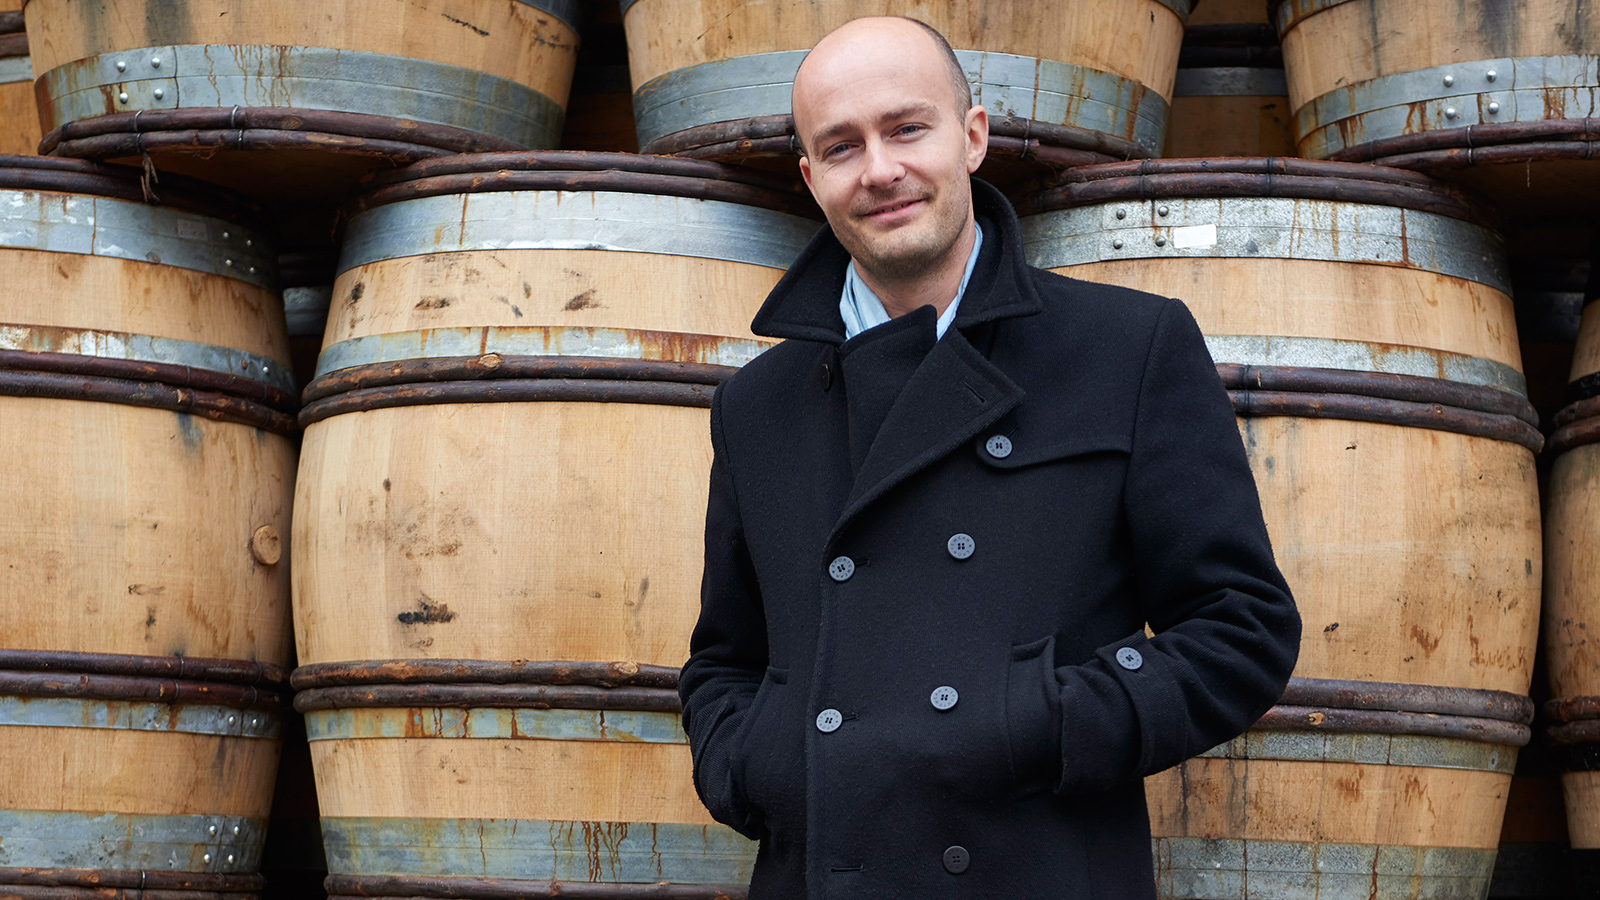 Erwan Faiveley of Domaine Faiveley. Nuits-St-Georges, Côte d'Or, France.